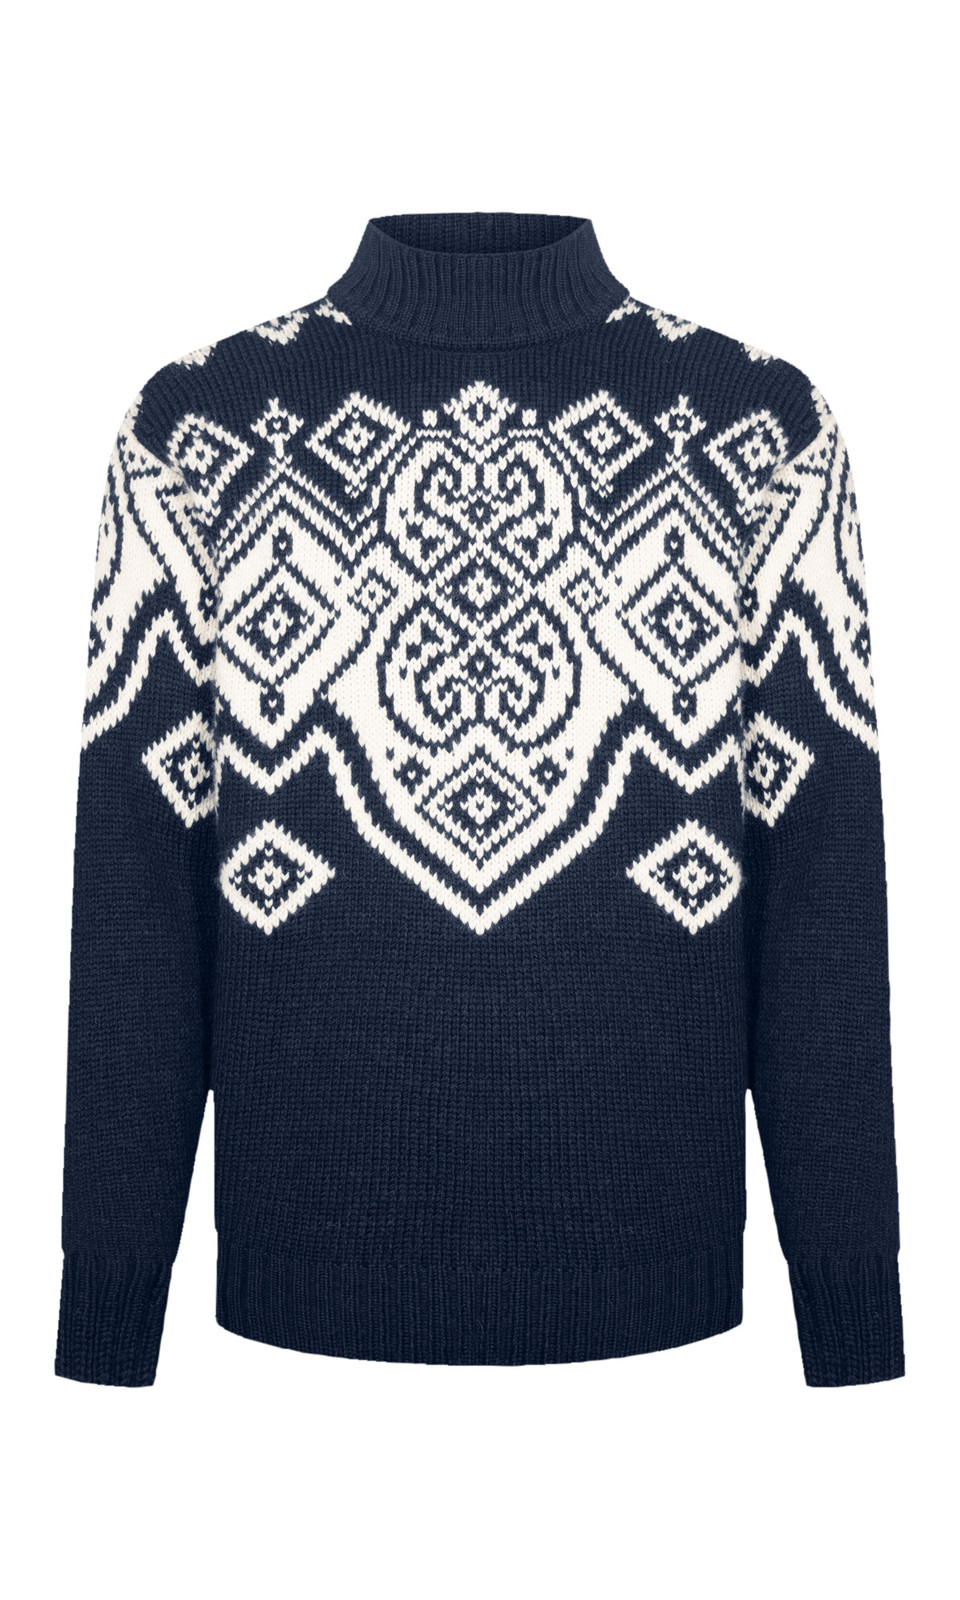 Dale of Norway Falun Sweater, Mens- Navy/Off White, 94451-C